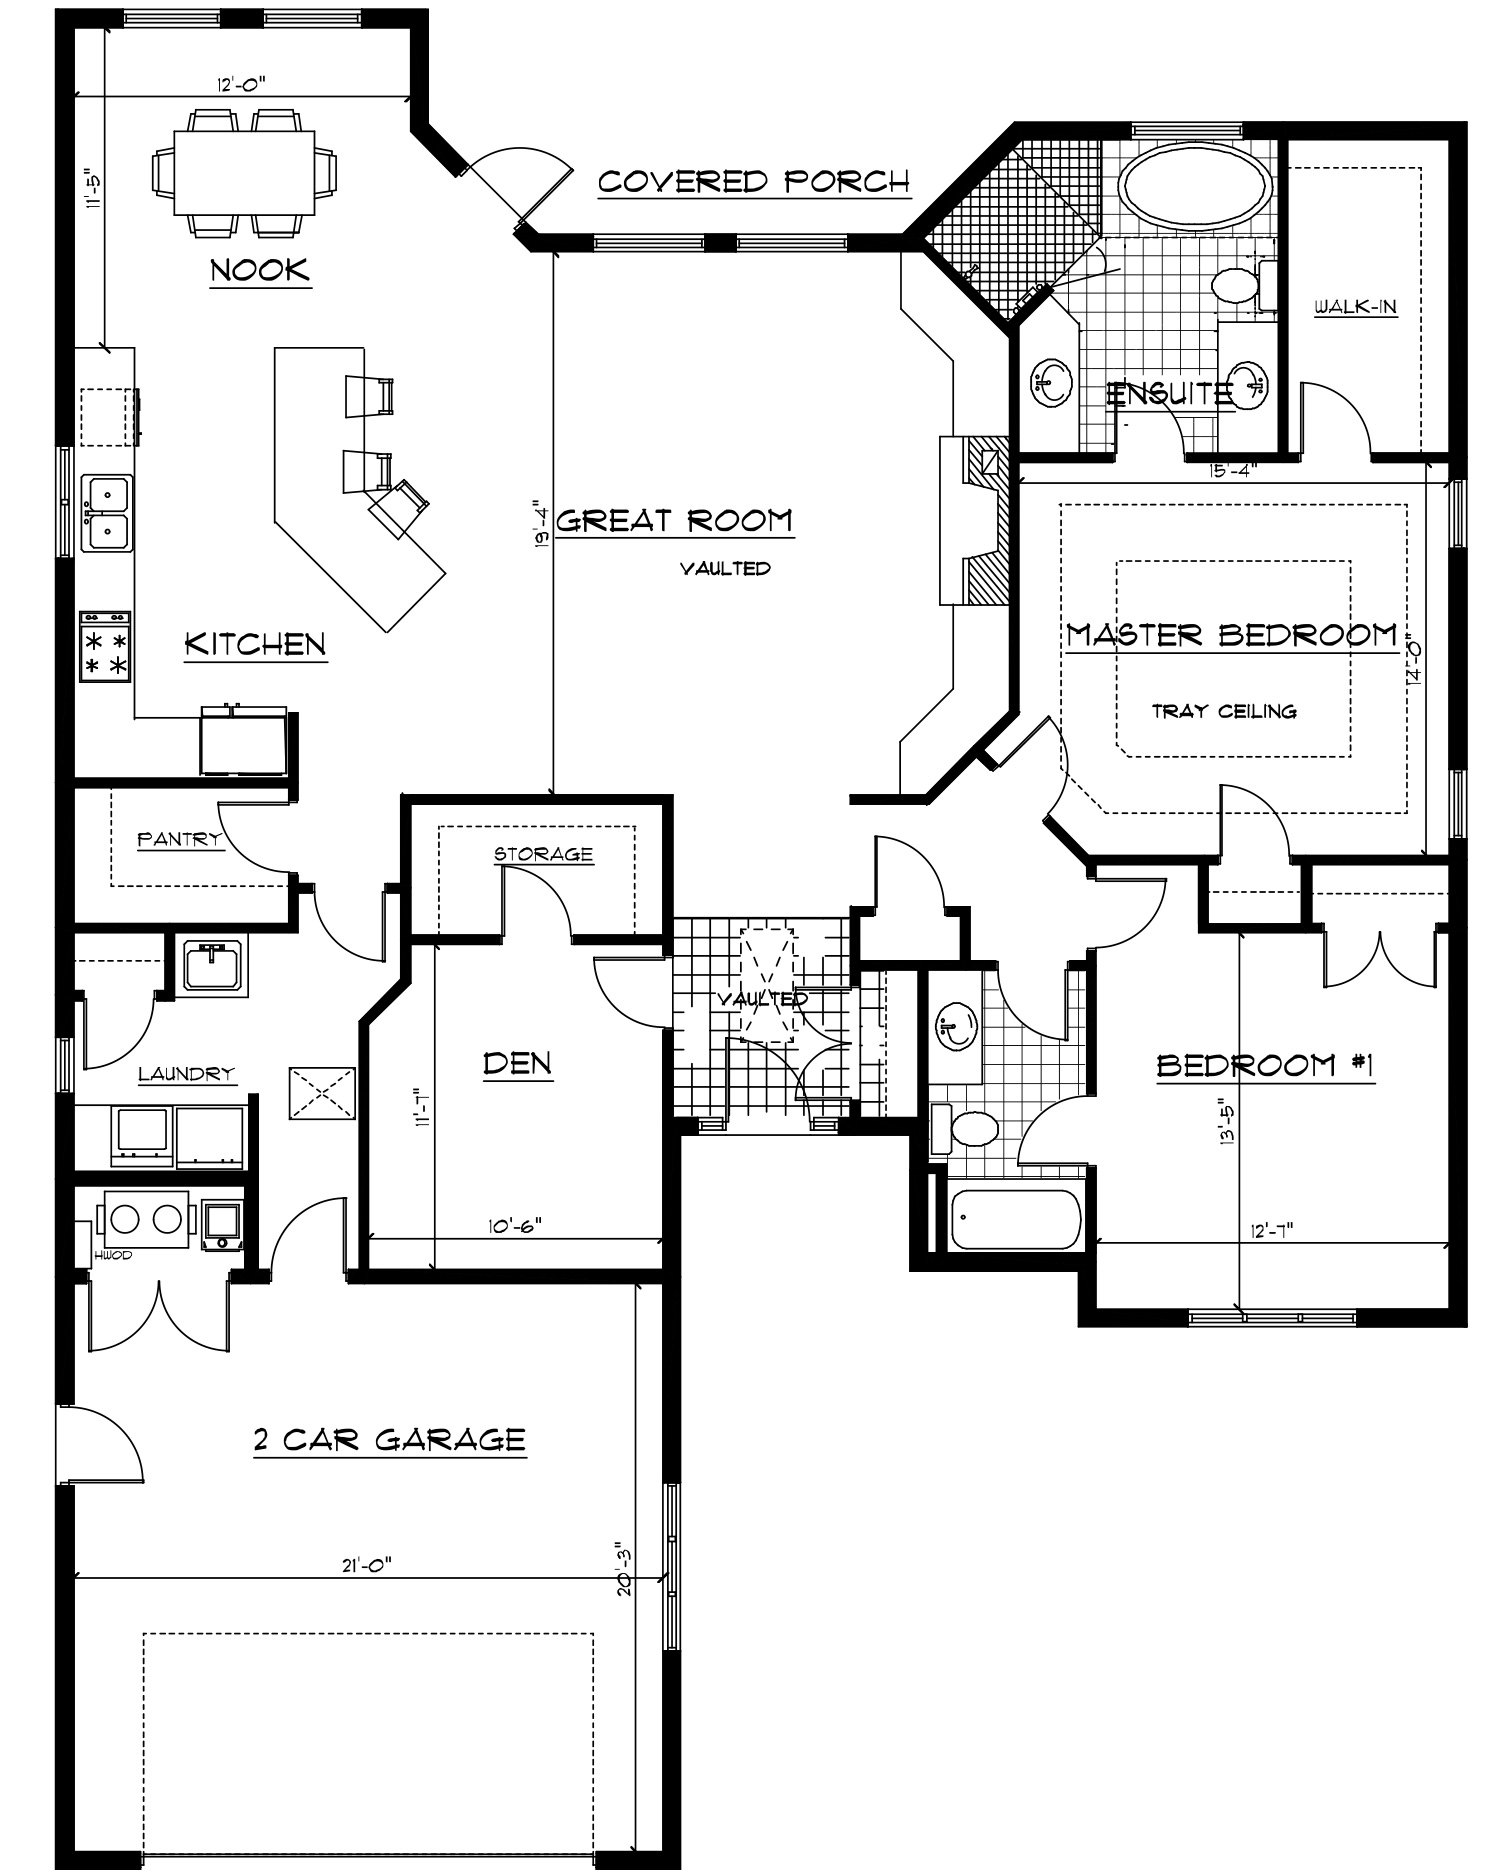 645Alpine_Floorplan.jpg